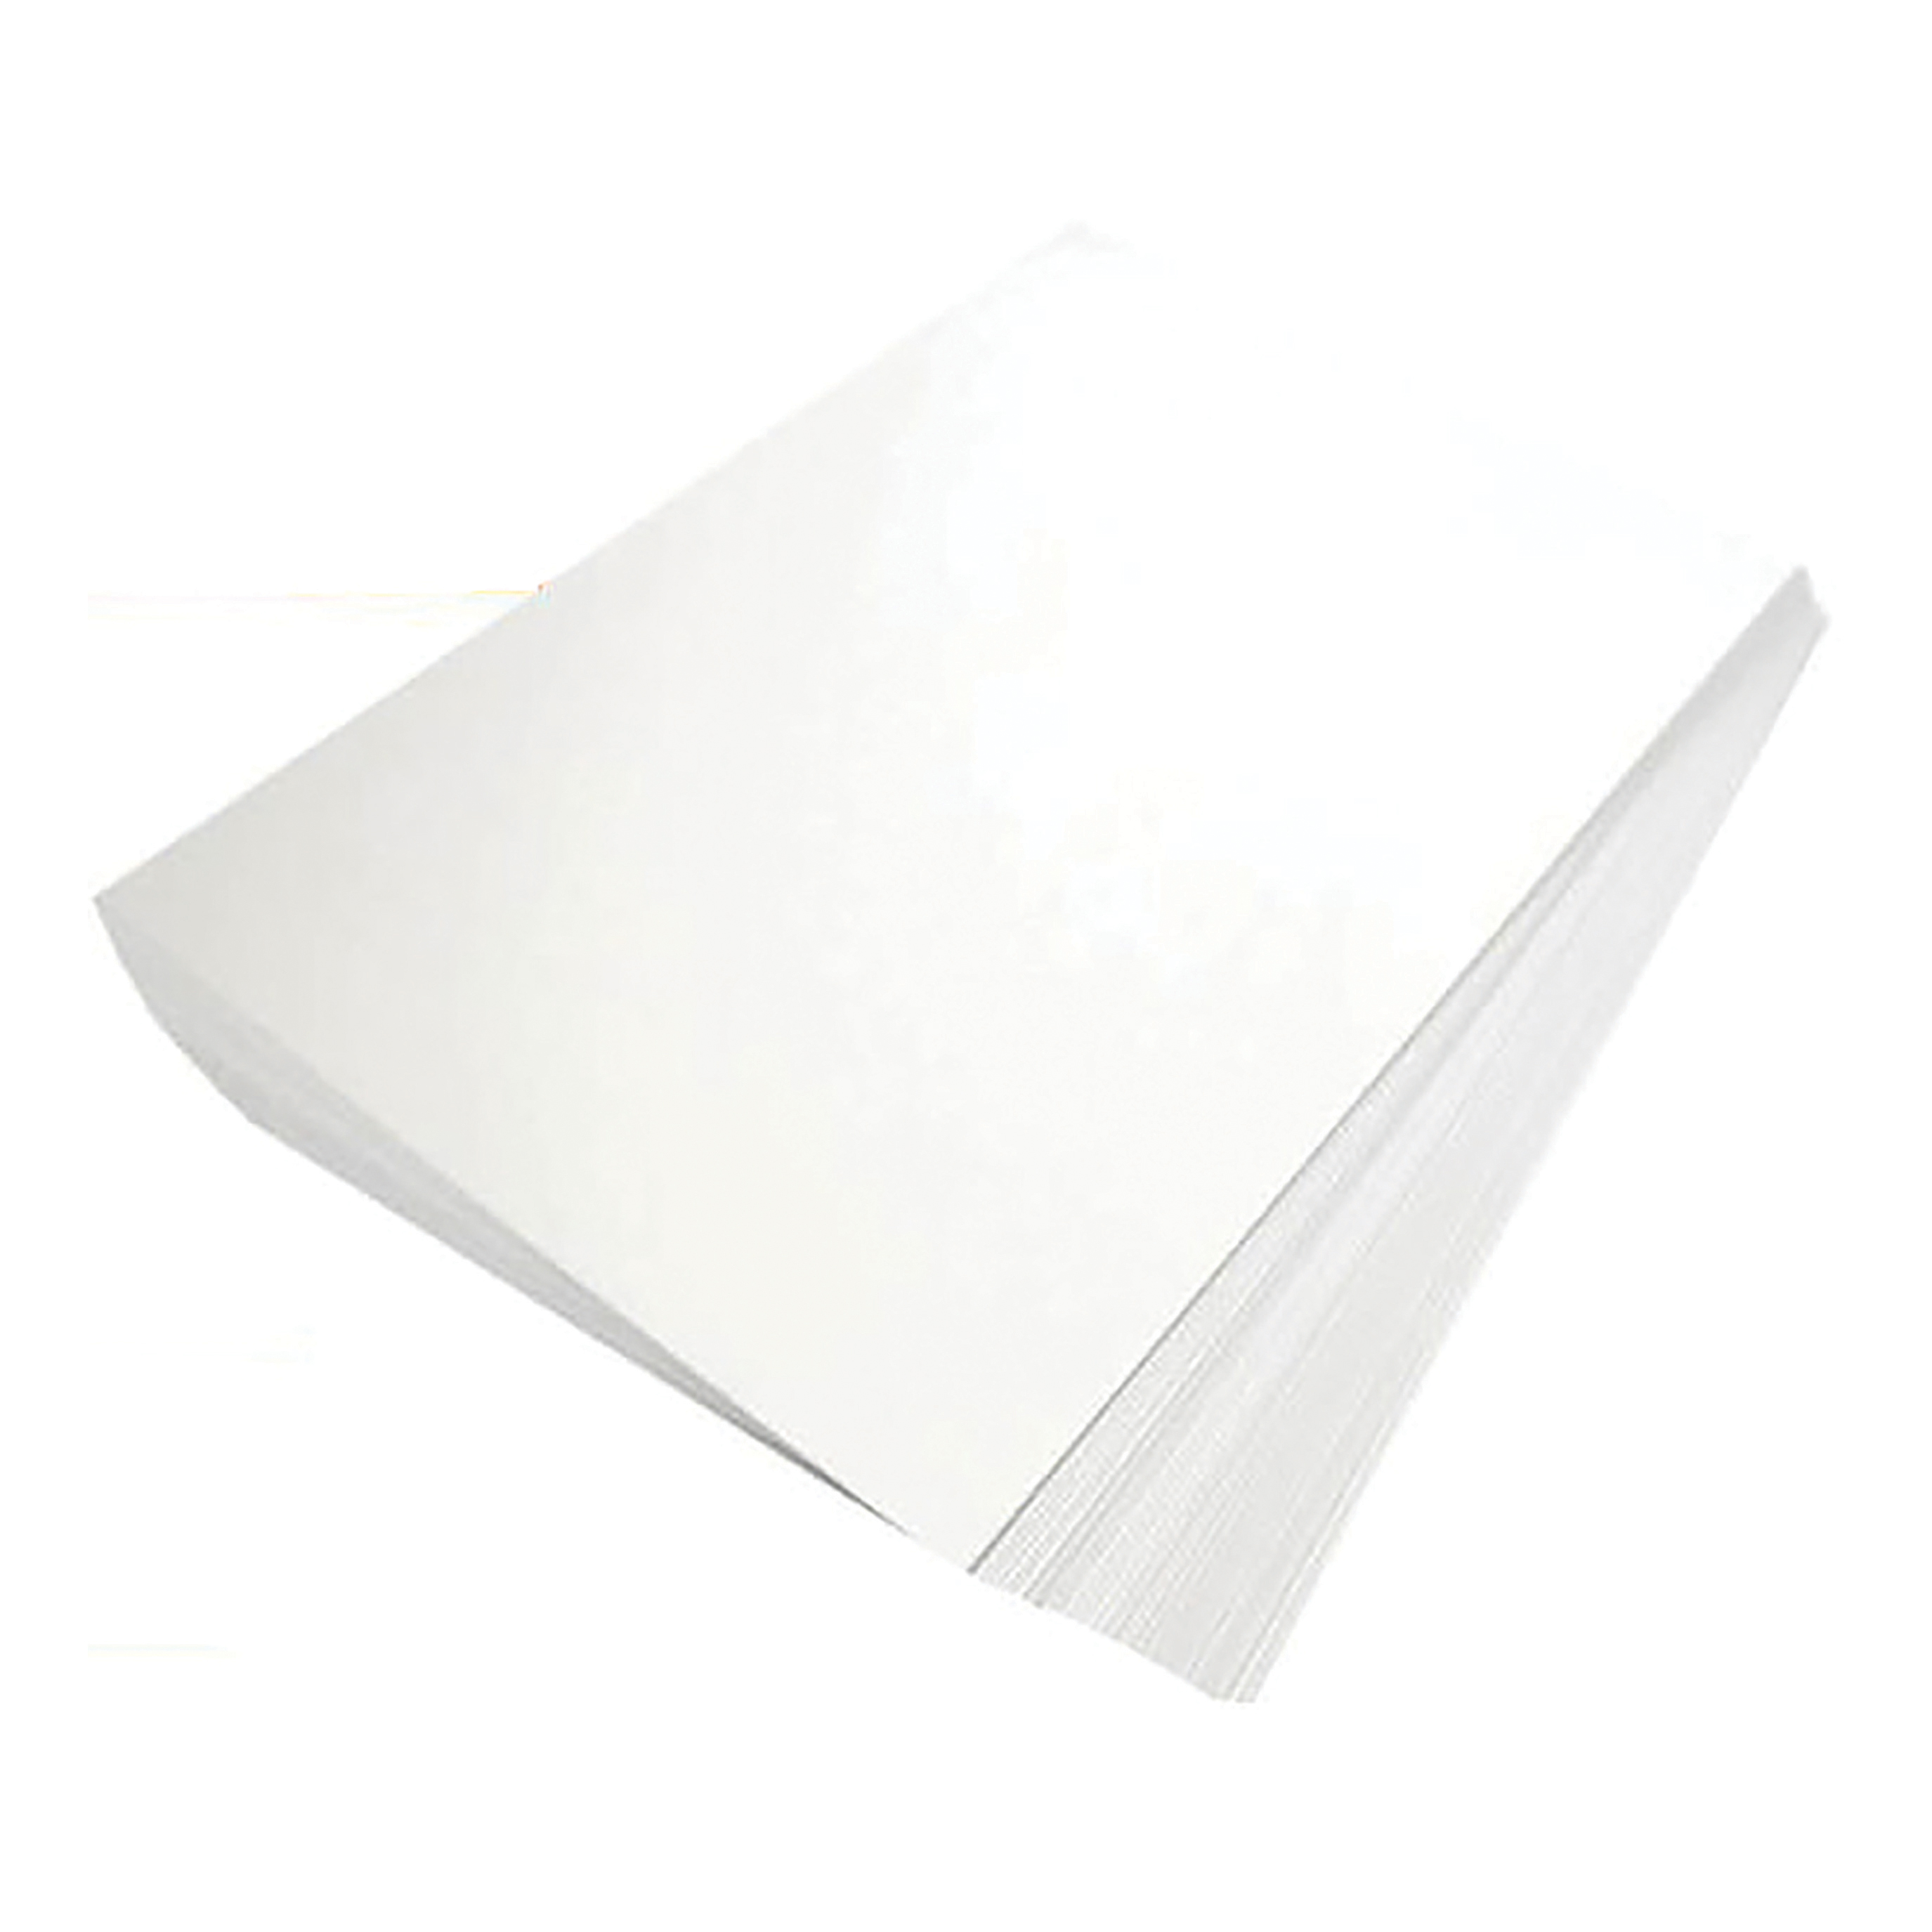 Image for 5 Star Elite Premium Business Paper Laid Finish Ream-Wrapped 100gsm A4 High White [500 Sheets]